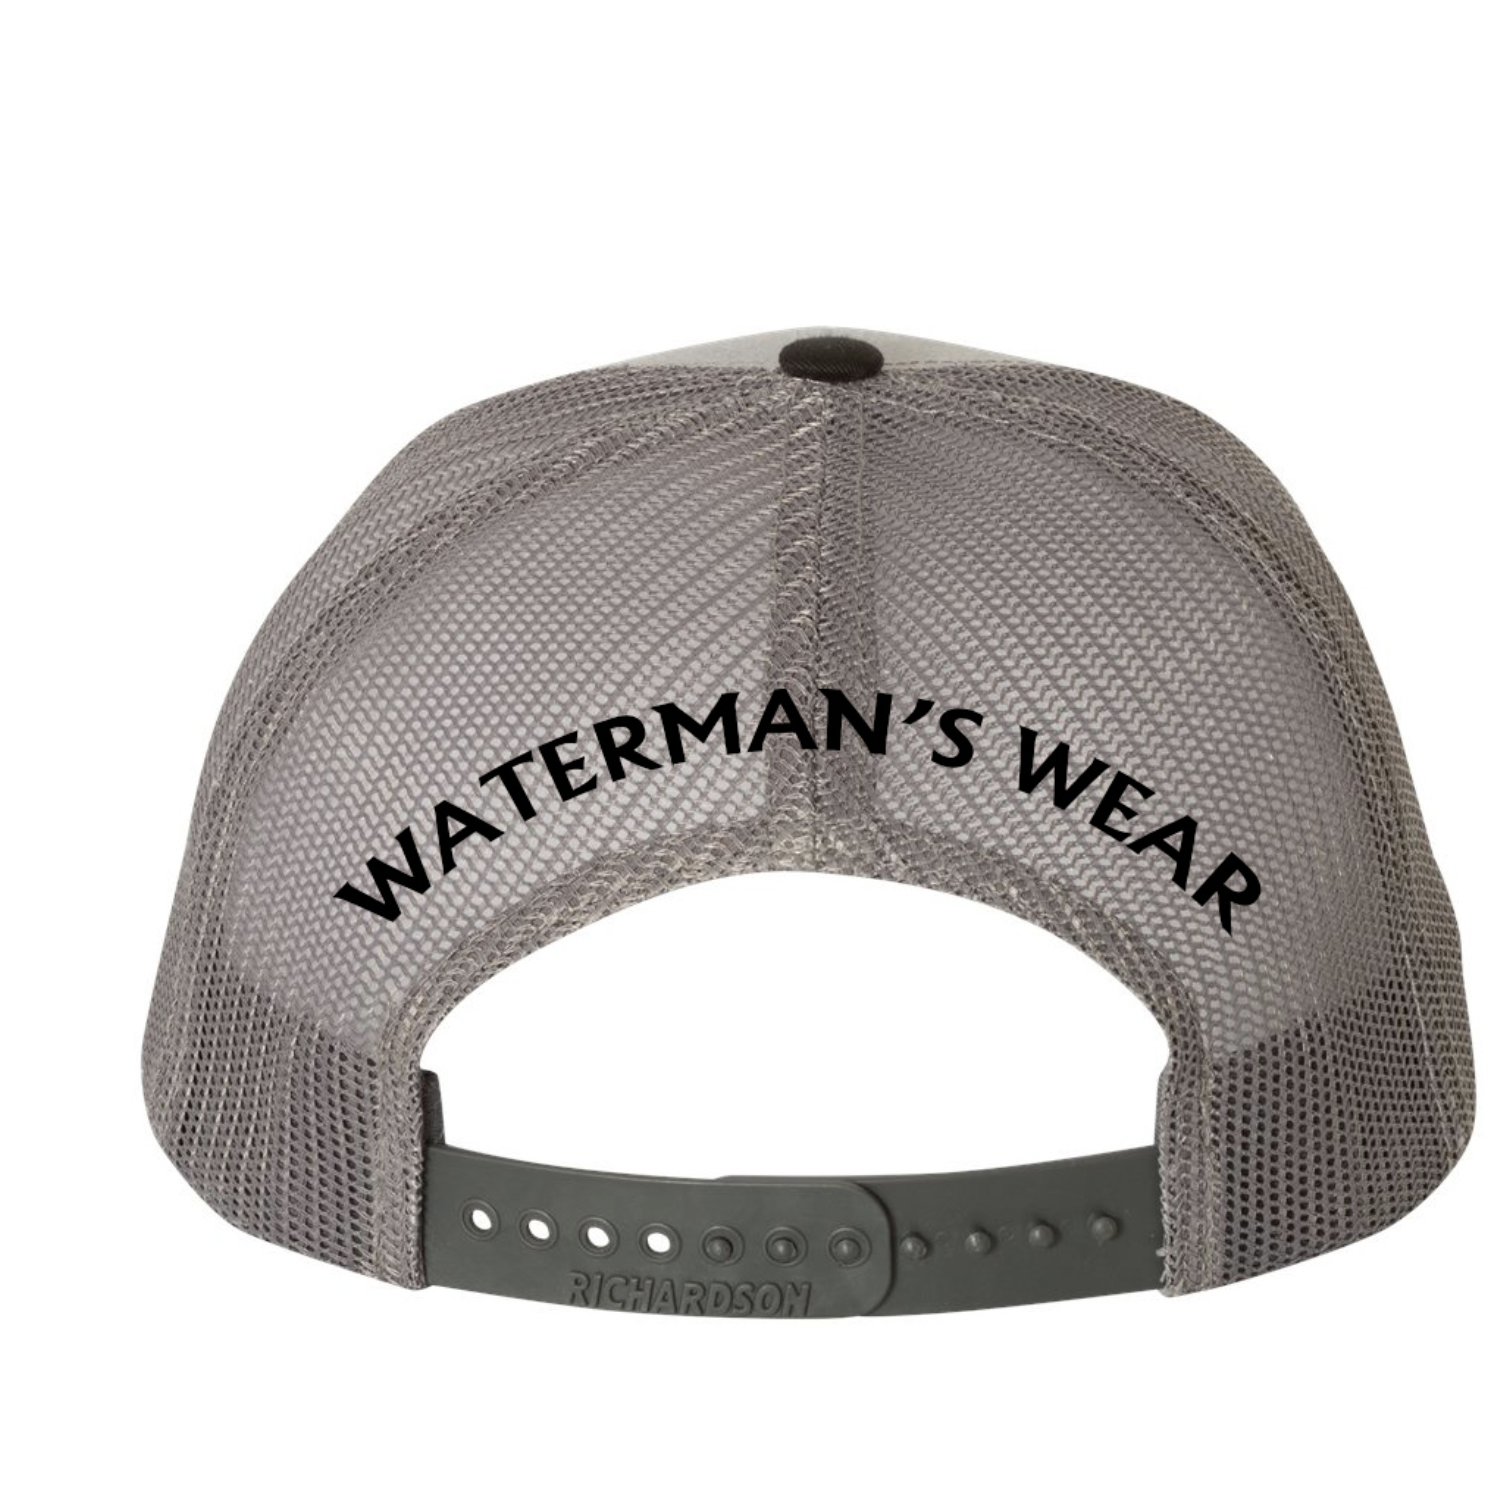 Waterman's Wear Trident Logo Dual Color Adjustable Trucker Hat - Grey/Black